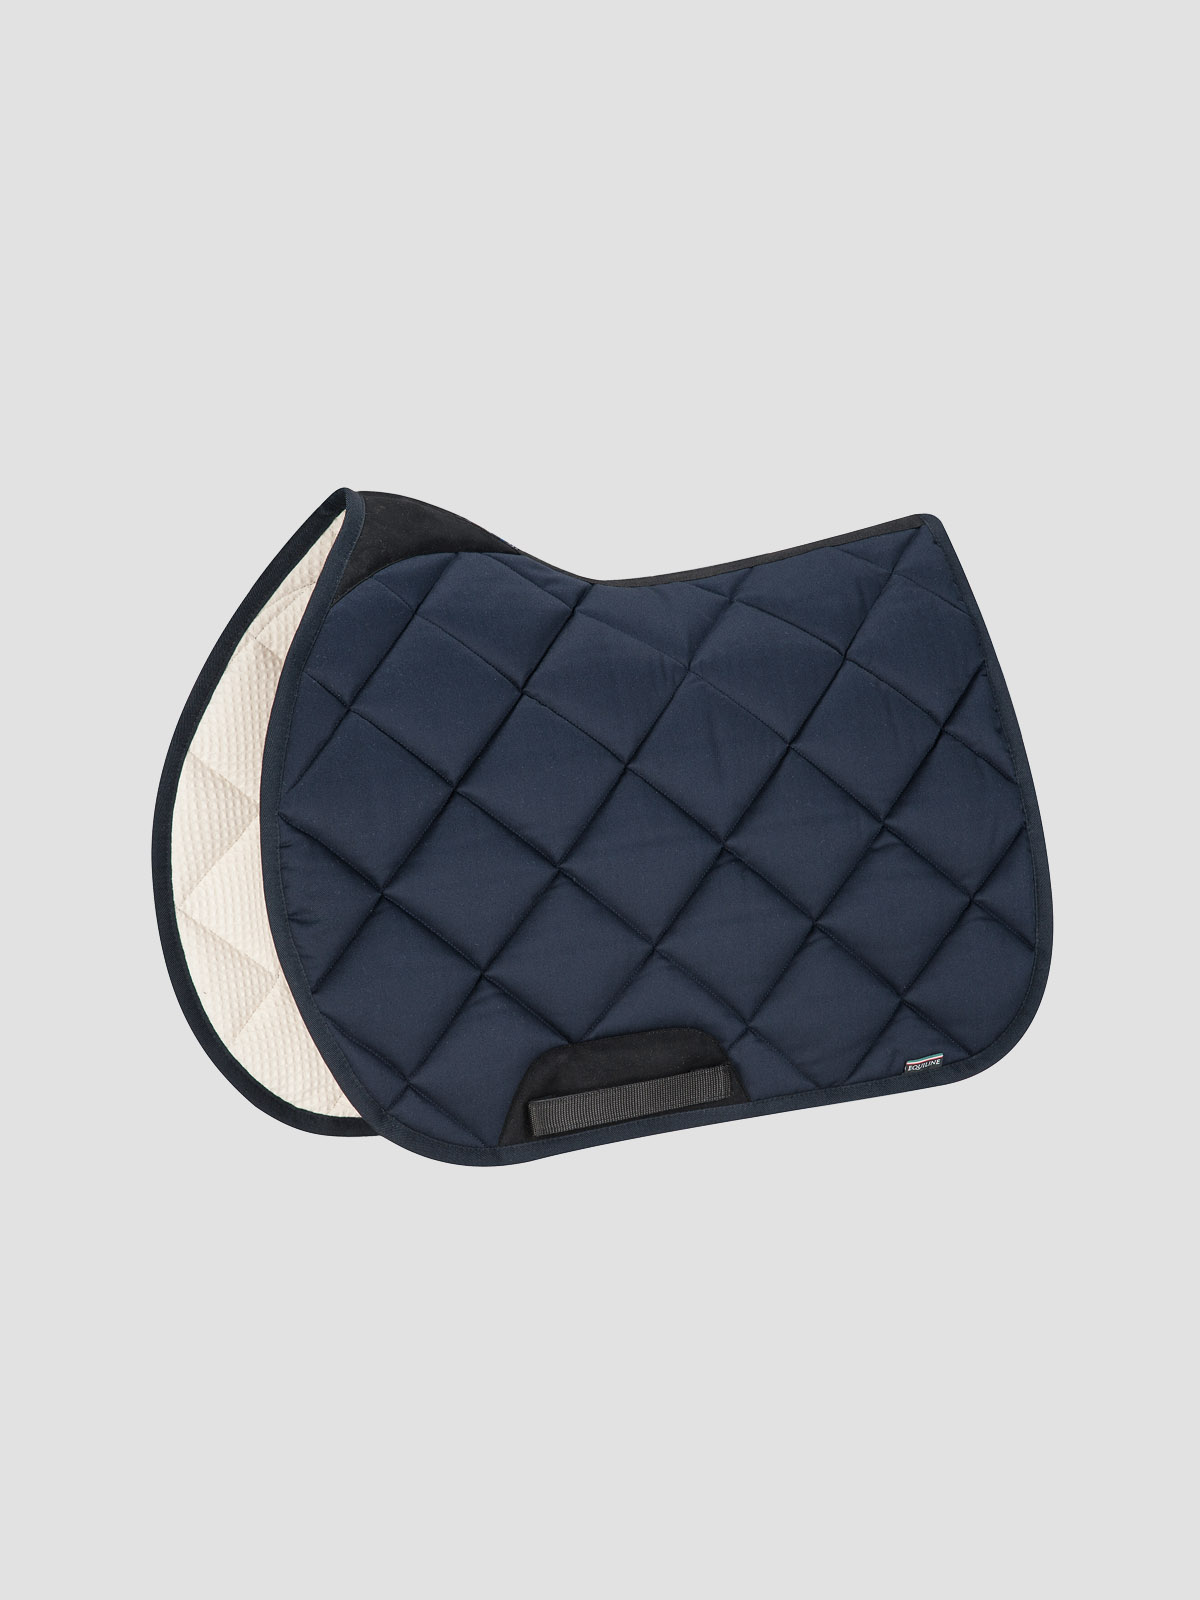 LAUREN - Rombo Saddle Pad 3